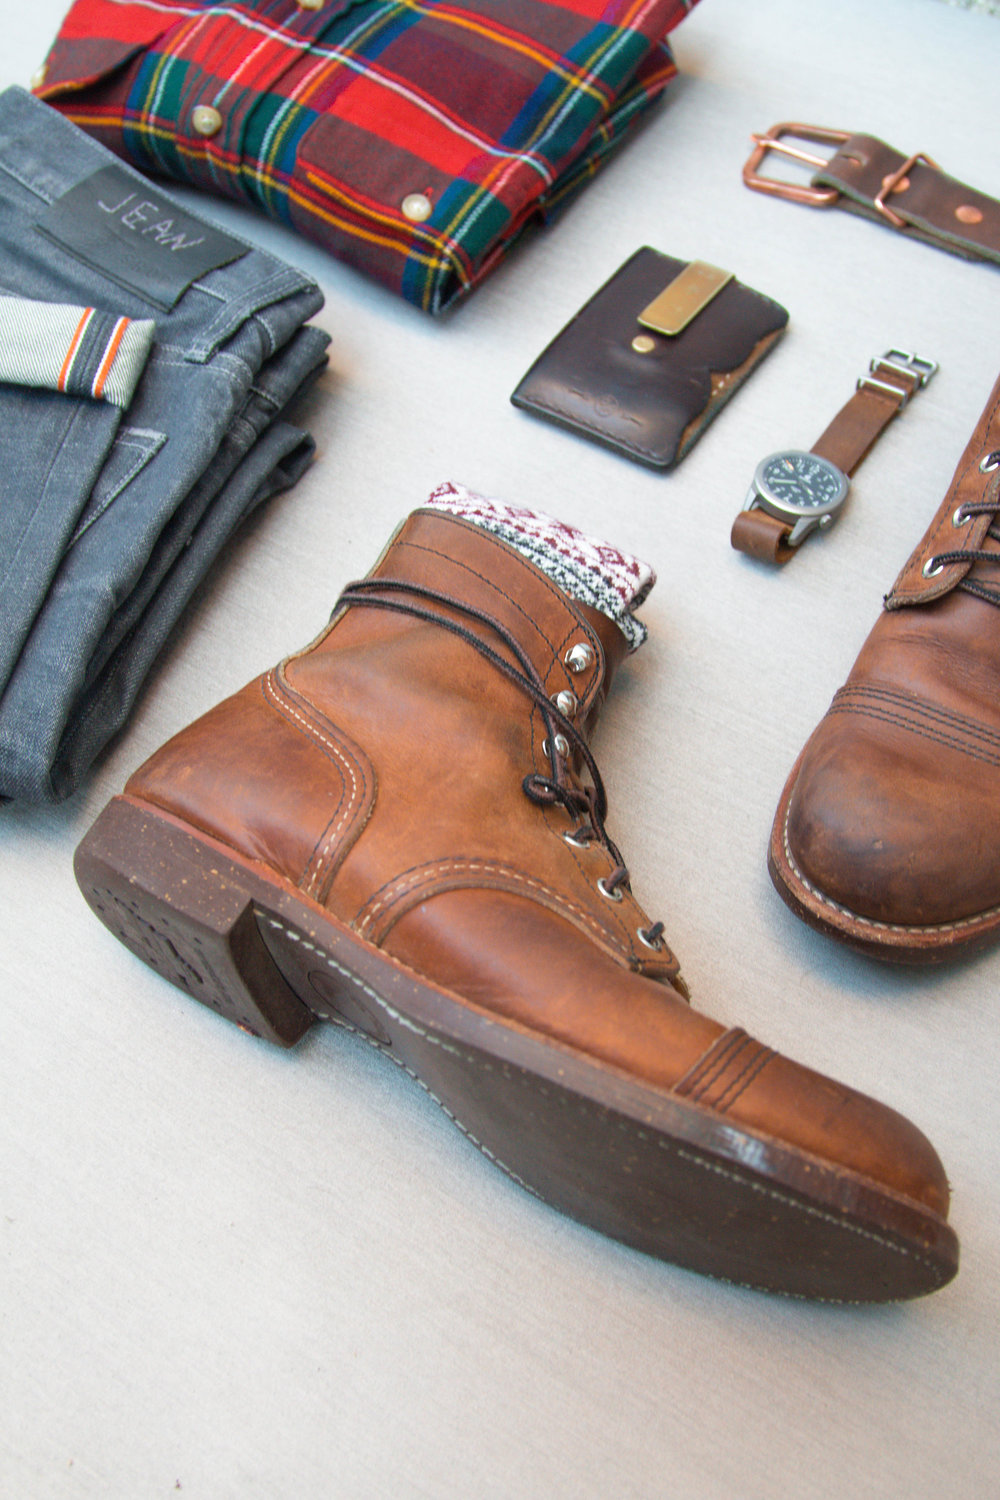 The Iron Rangers featured in one of my Instagram Grids